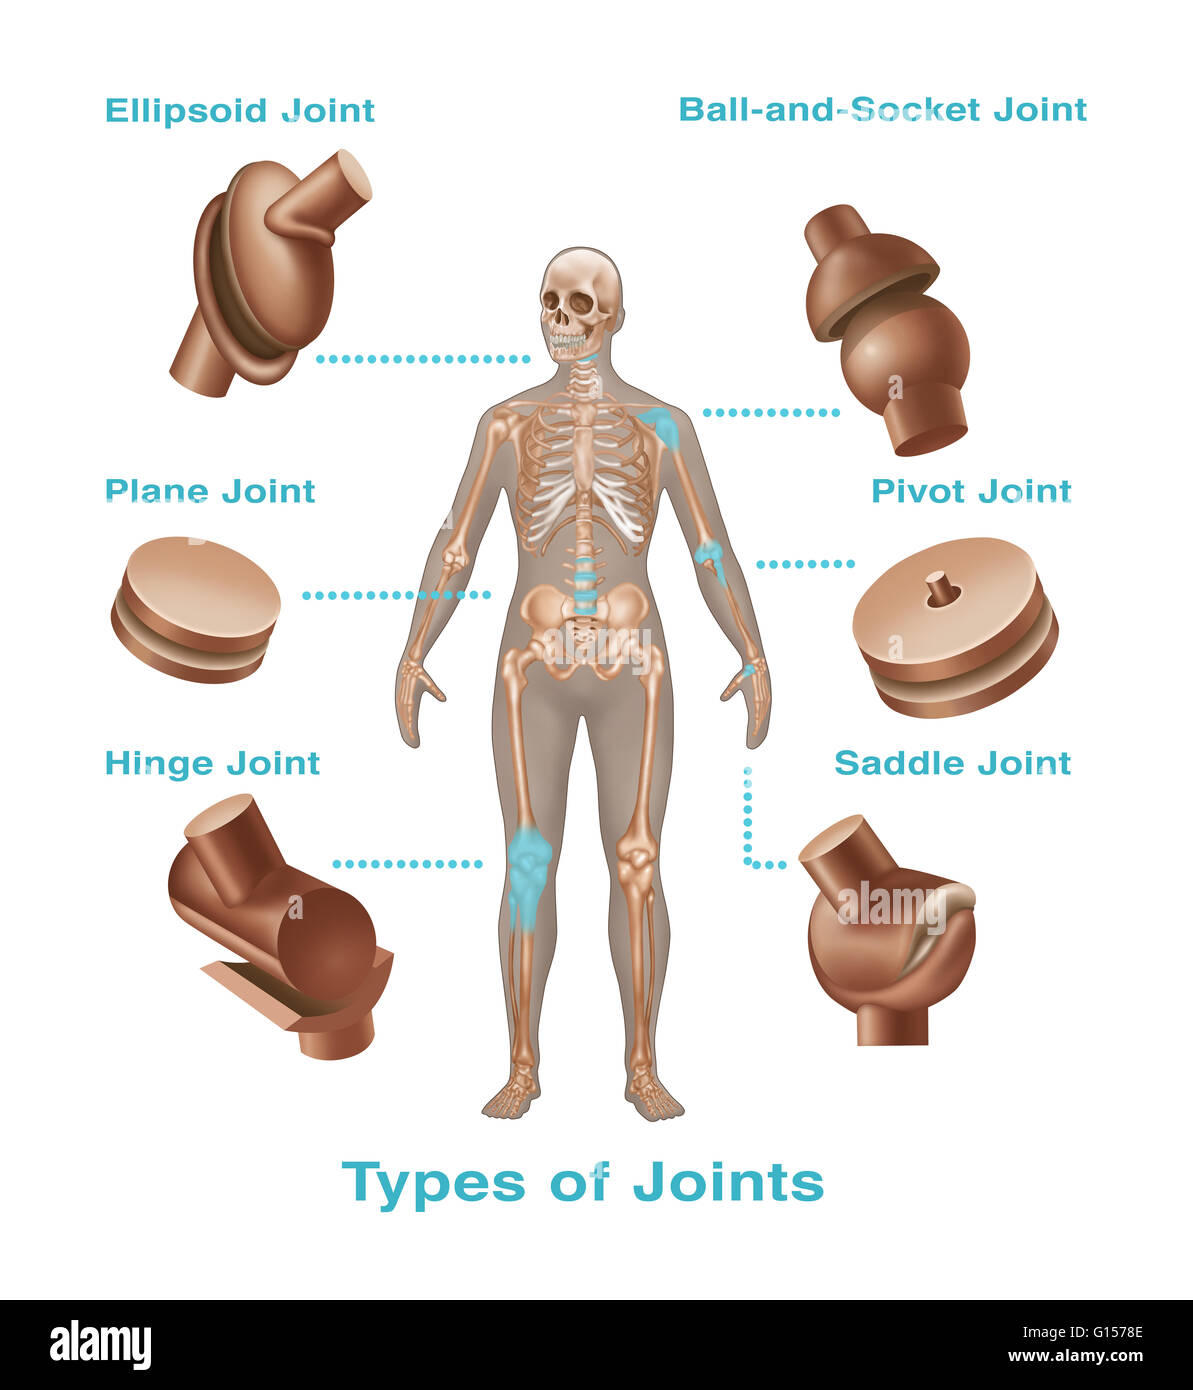 ball and socket joint. joint replacements in the human body. types of include ball and socket s